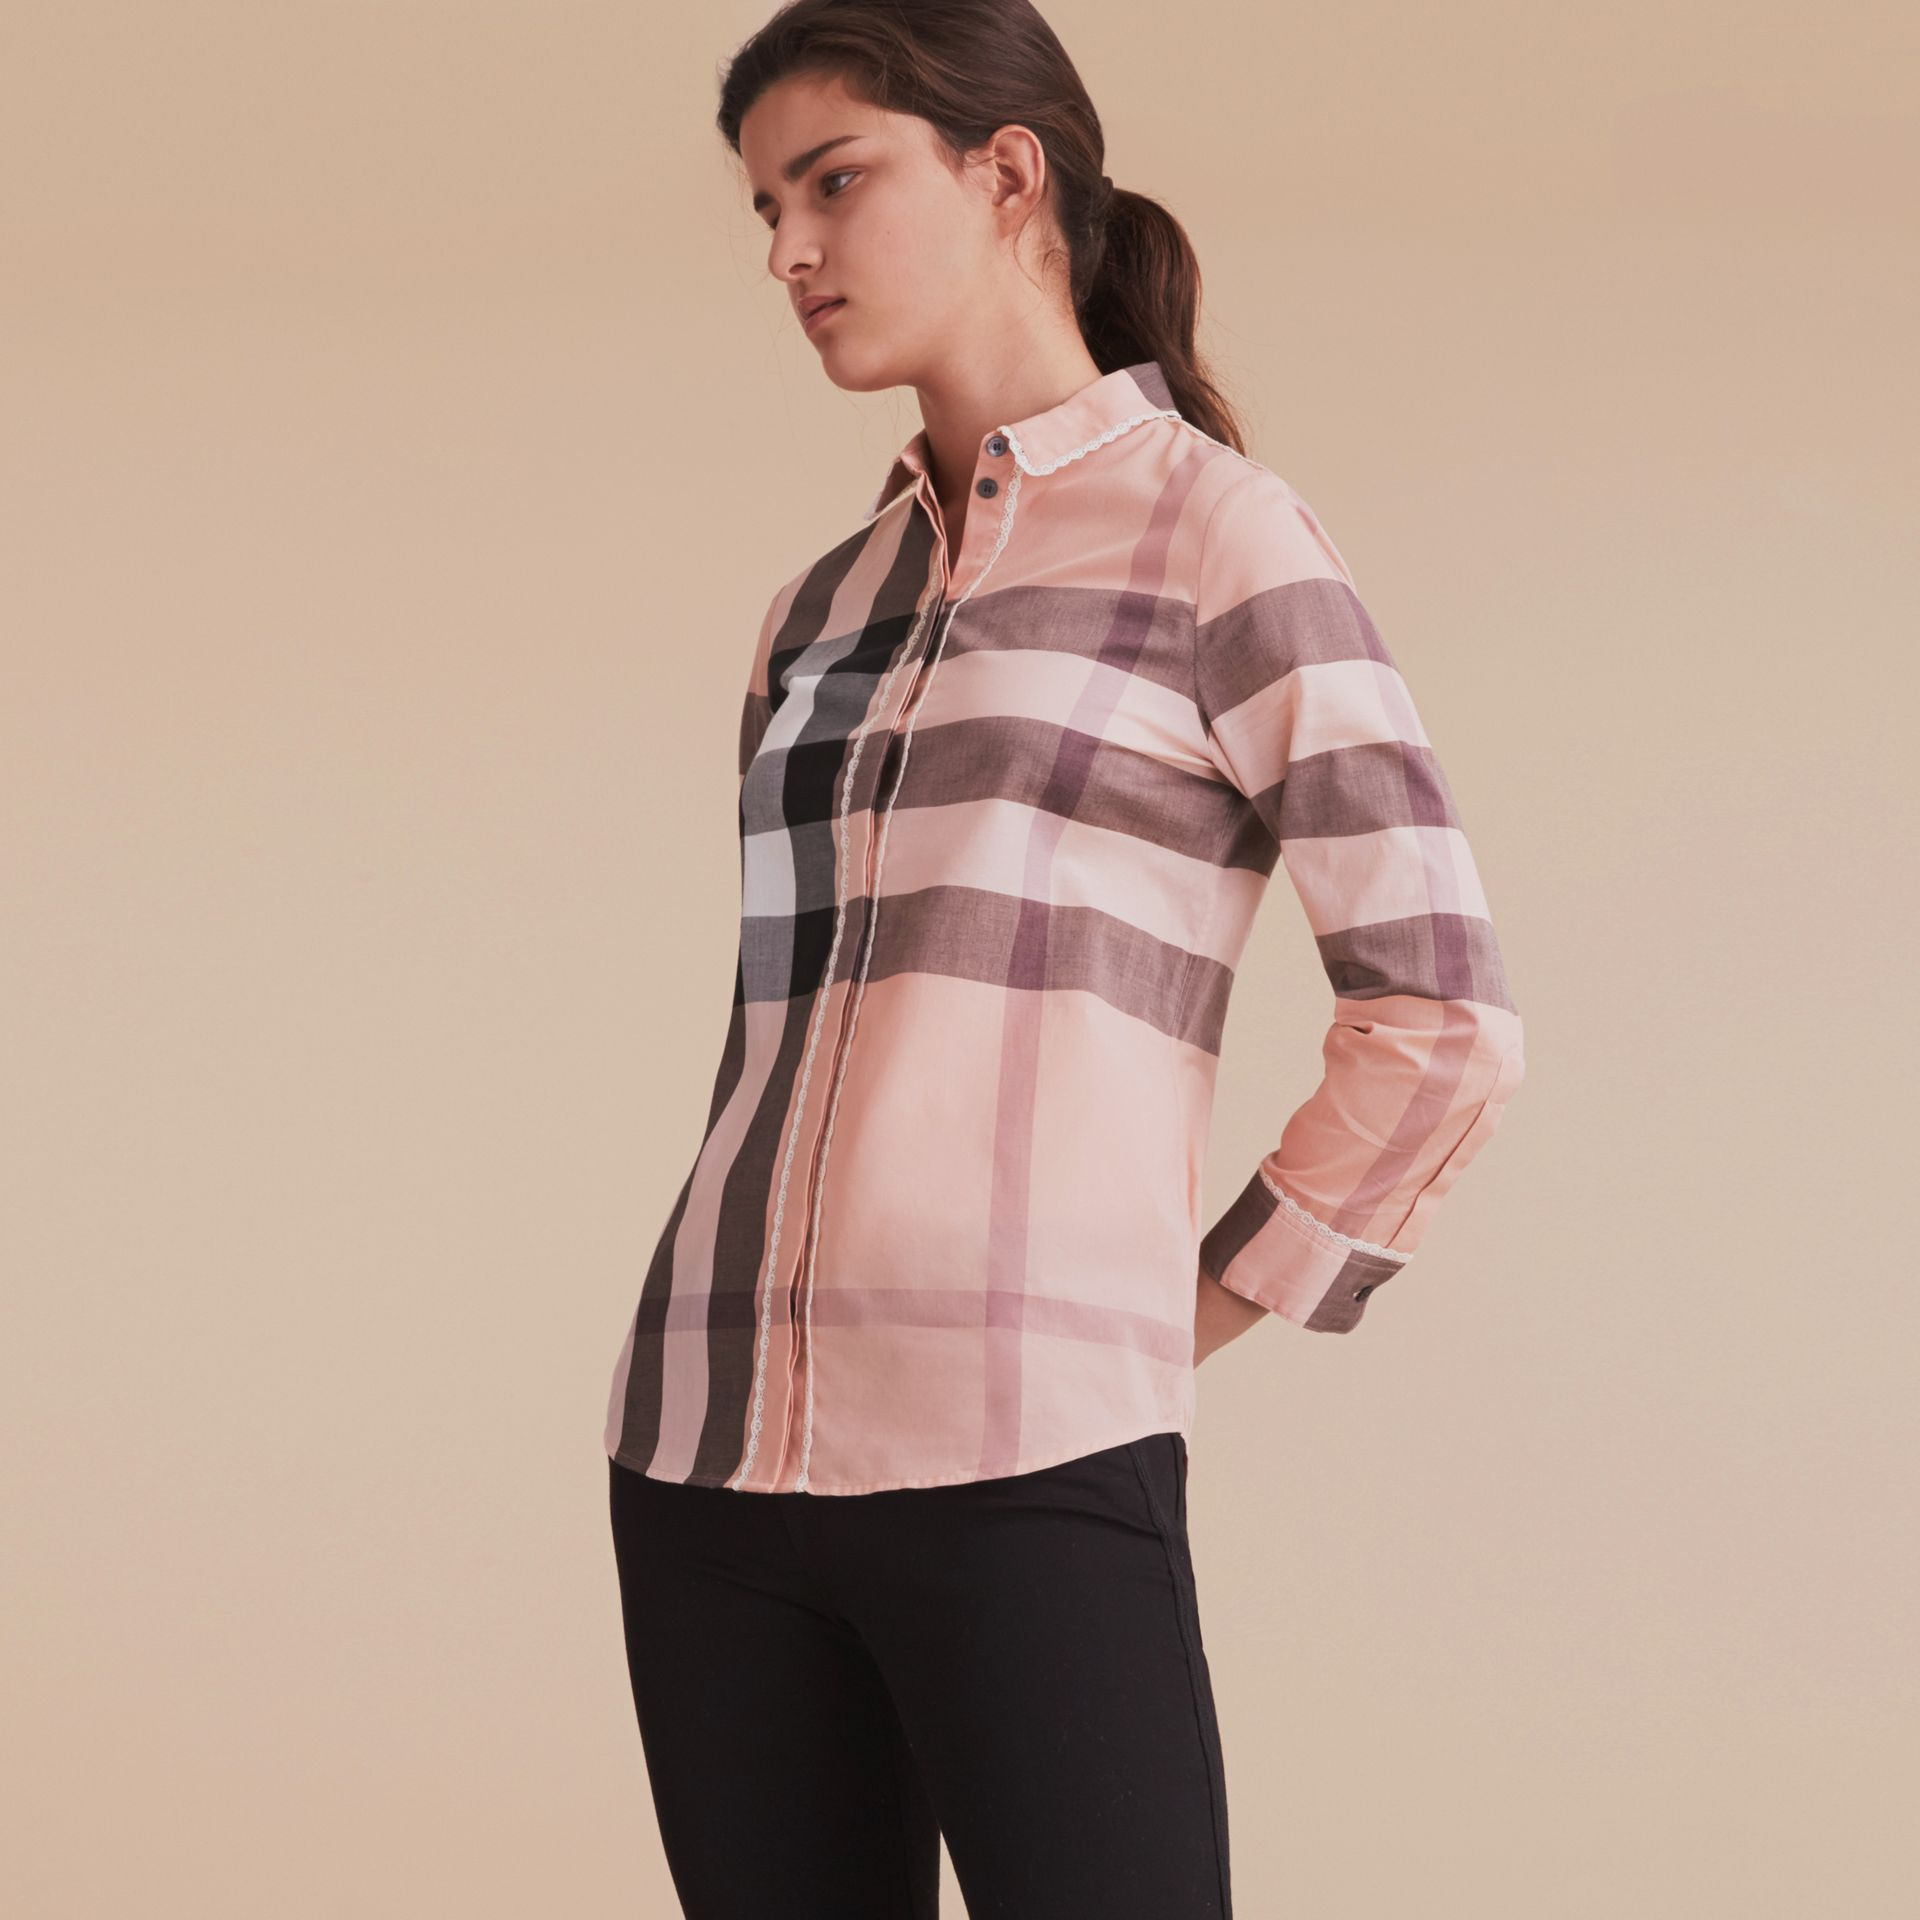 Lace Trim Check Cotton Shirt in Antique Pink - Women | Burberry - gallery image 6